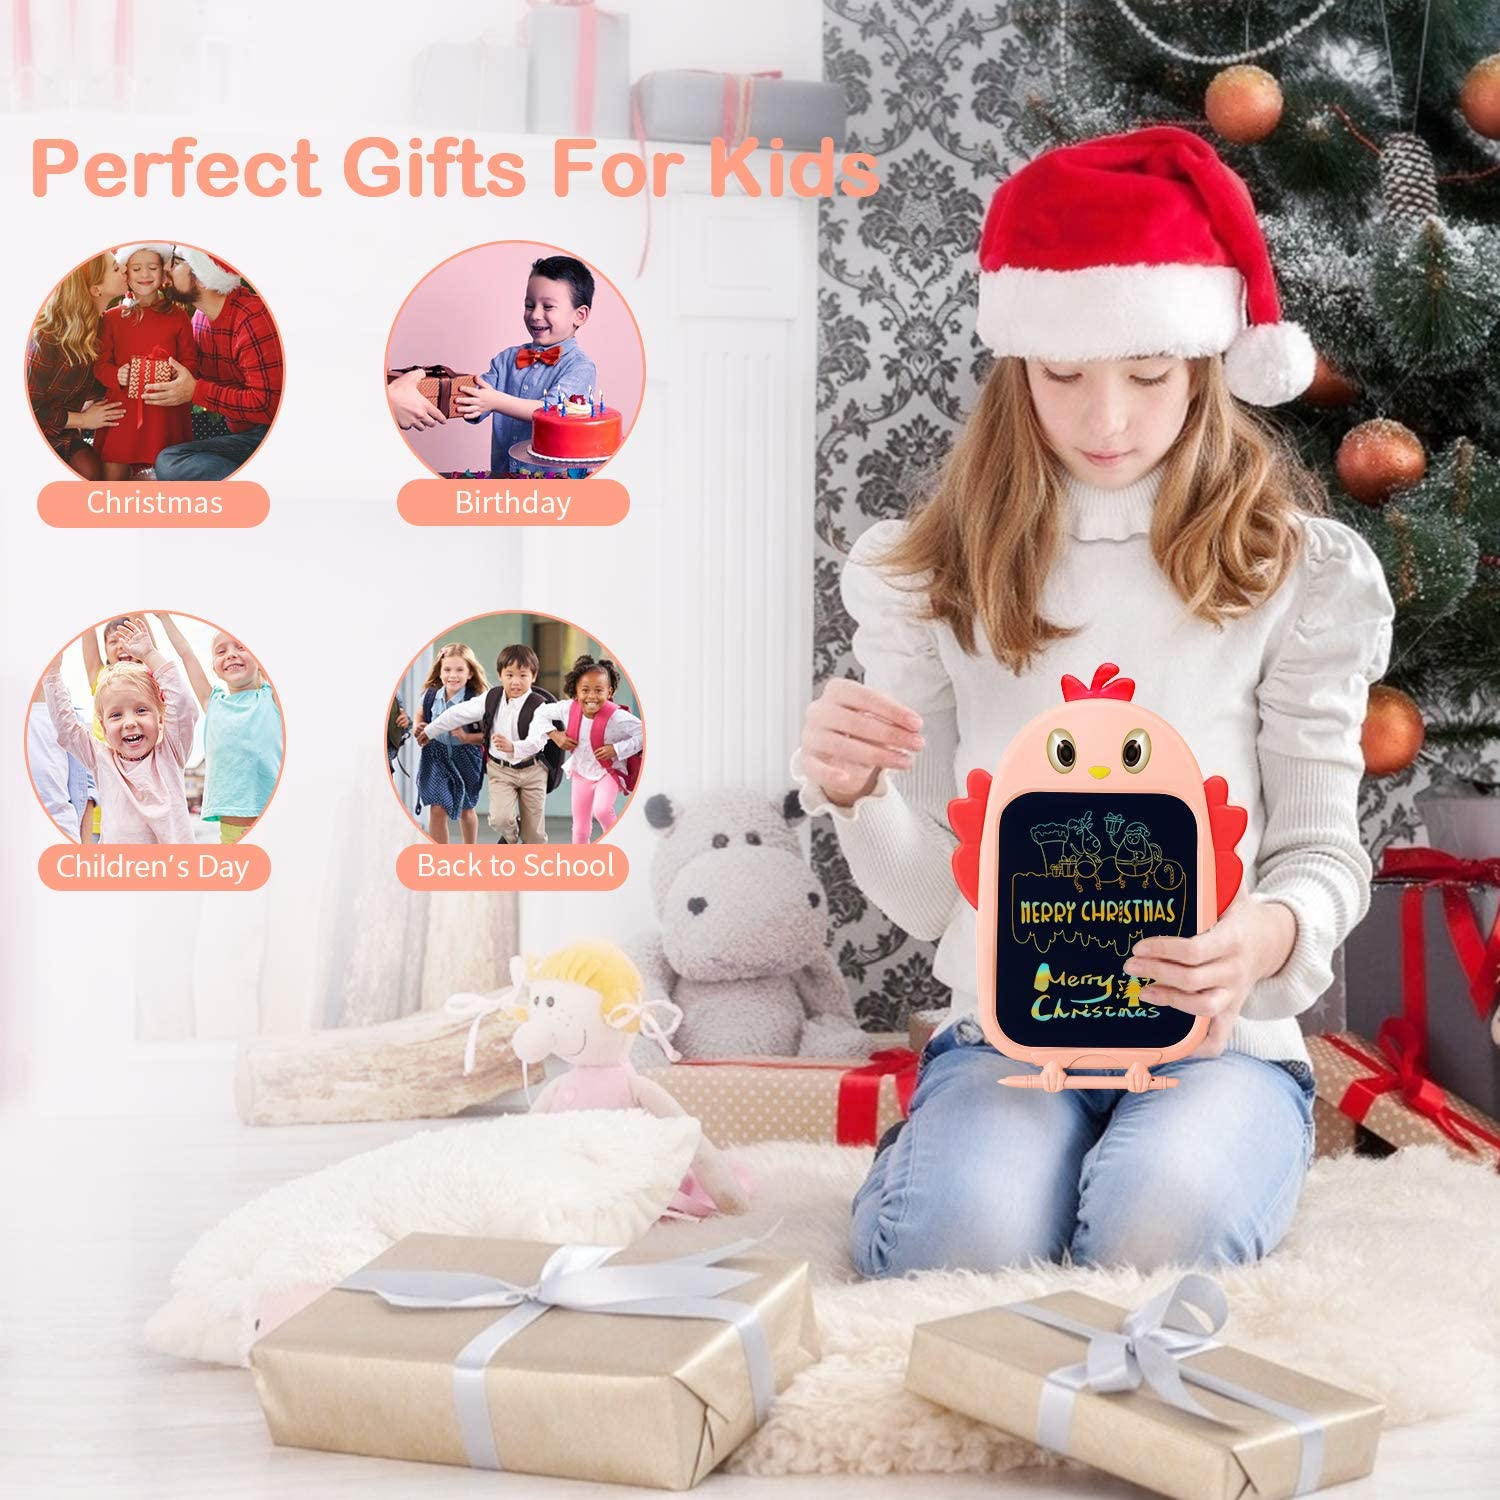 Pink sunvito LCD Writing Drawing Tablet Gifts for Toddlers Kids Girls Boys 8.5 Inch Colorful Digital Doodle Pad Educational Learning Board for 2 3 4 5 6 Years Children for Christmas